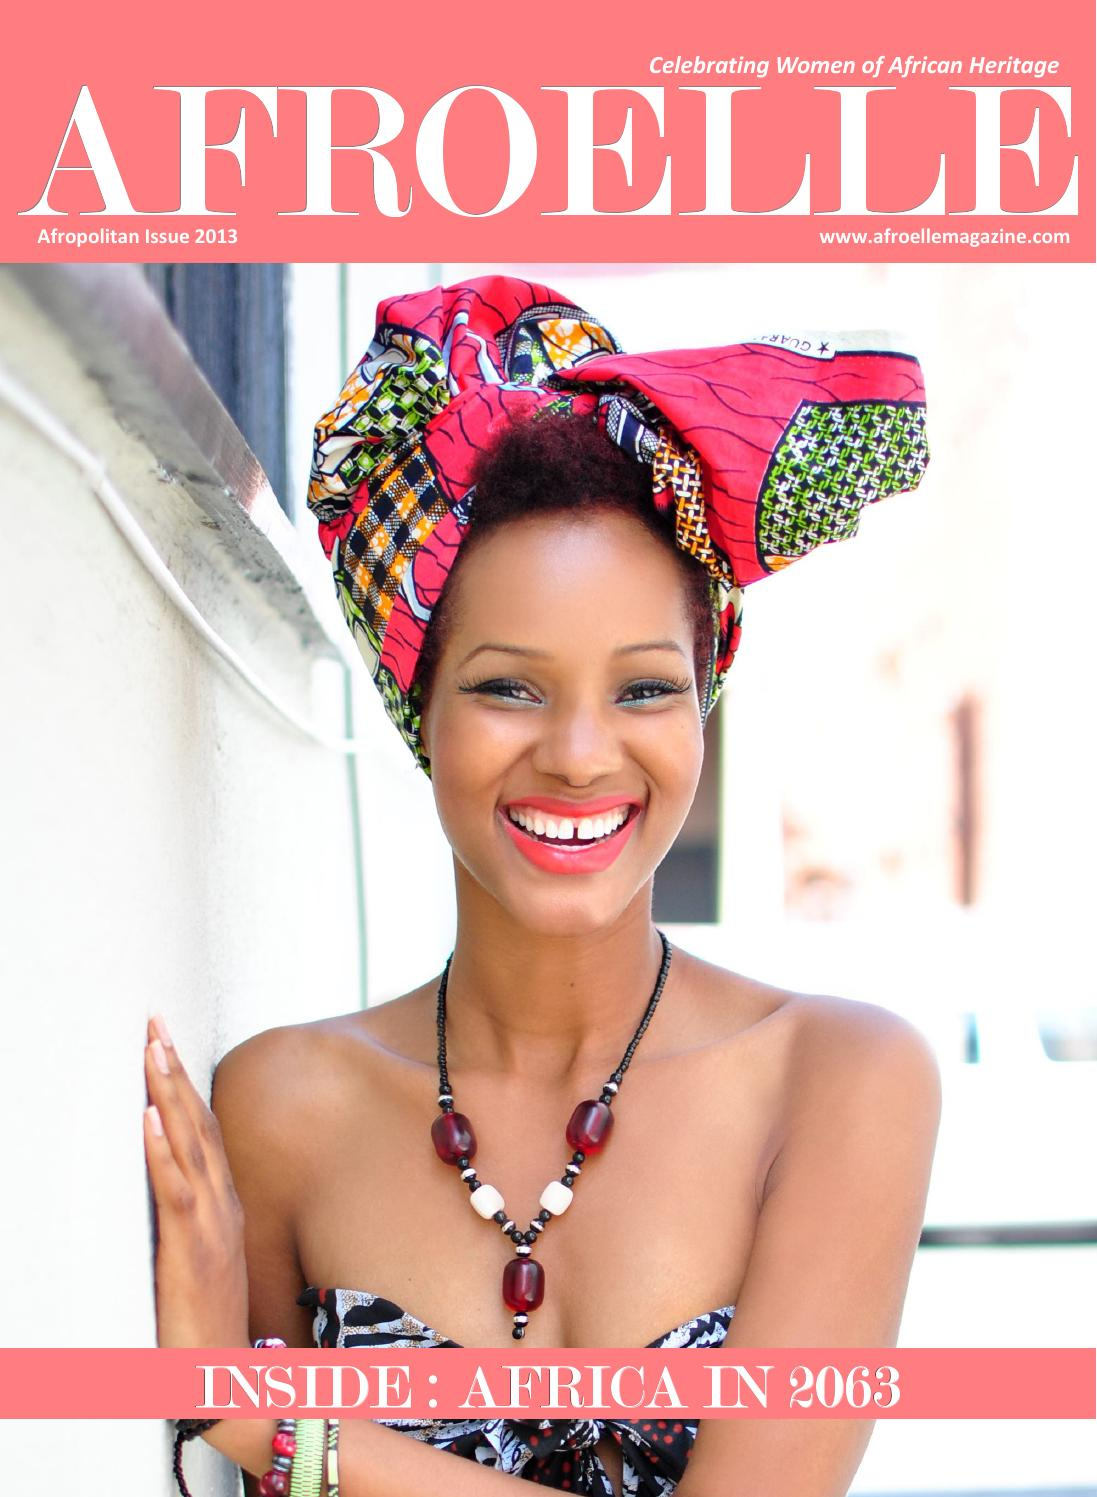 AfroElle Magazine's Afropolitan Issue 2013 by Afroelle